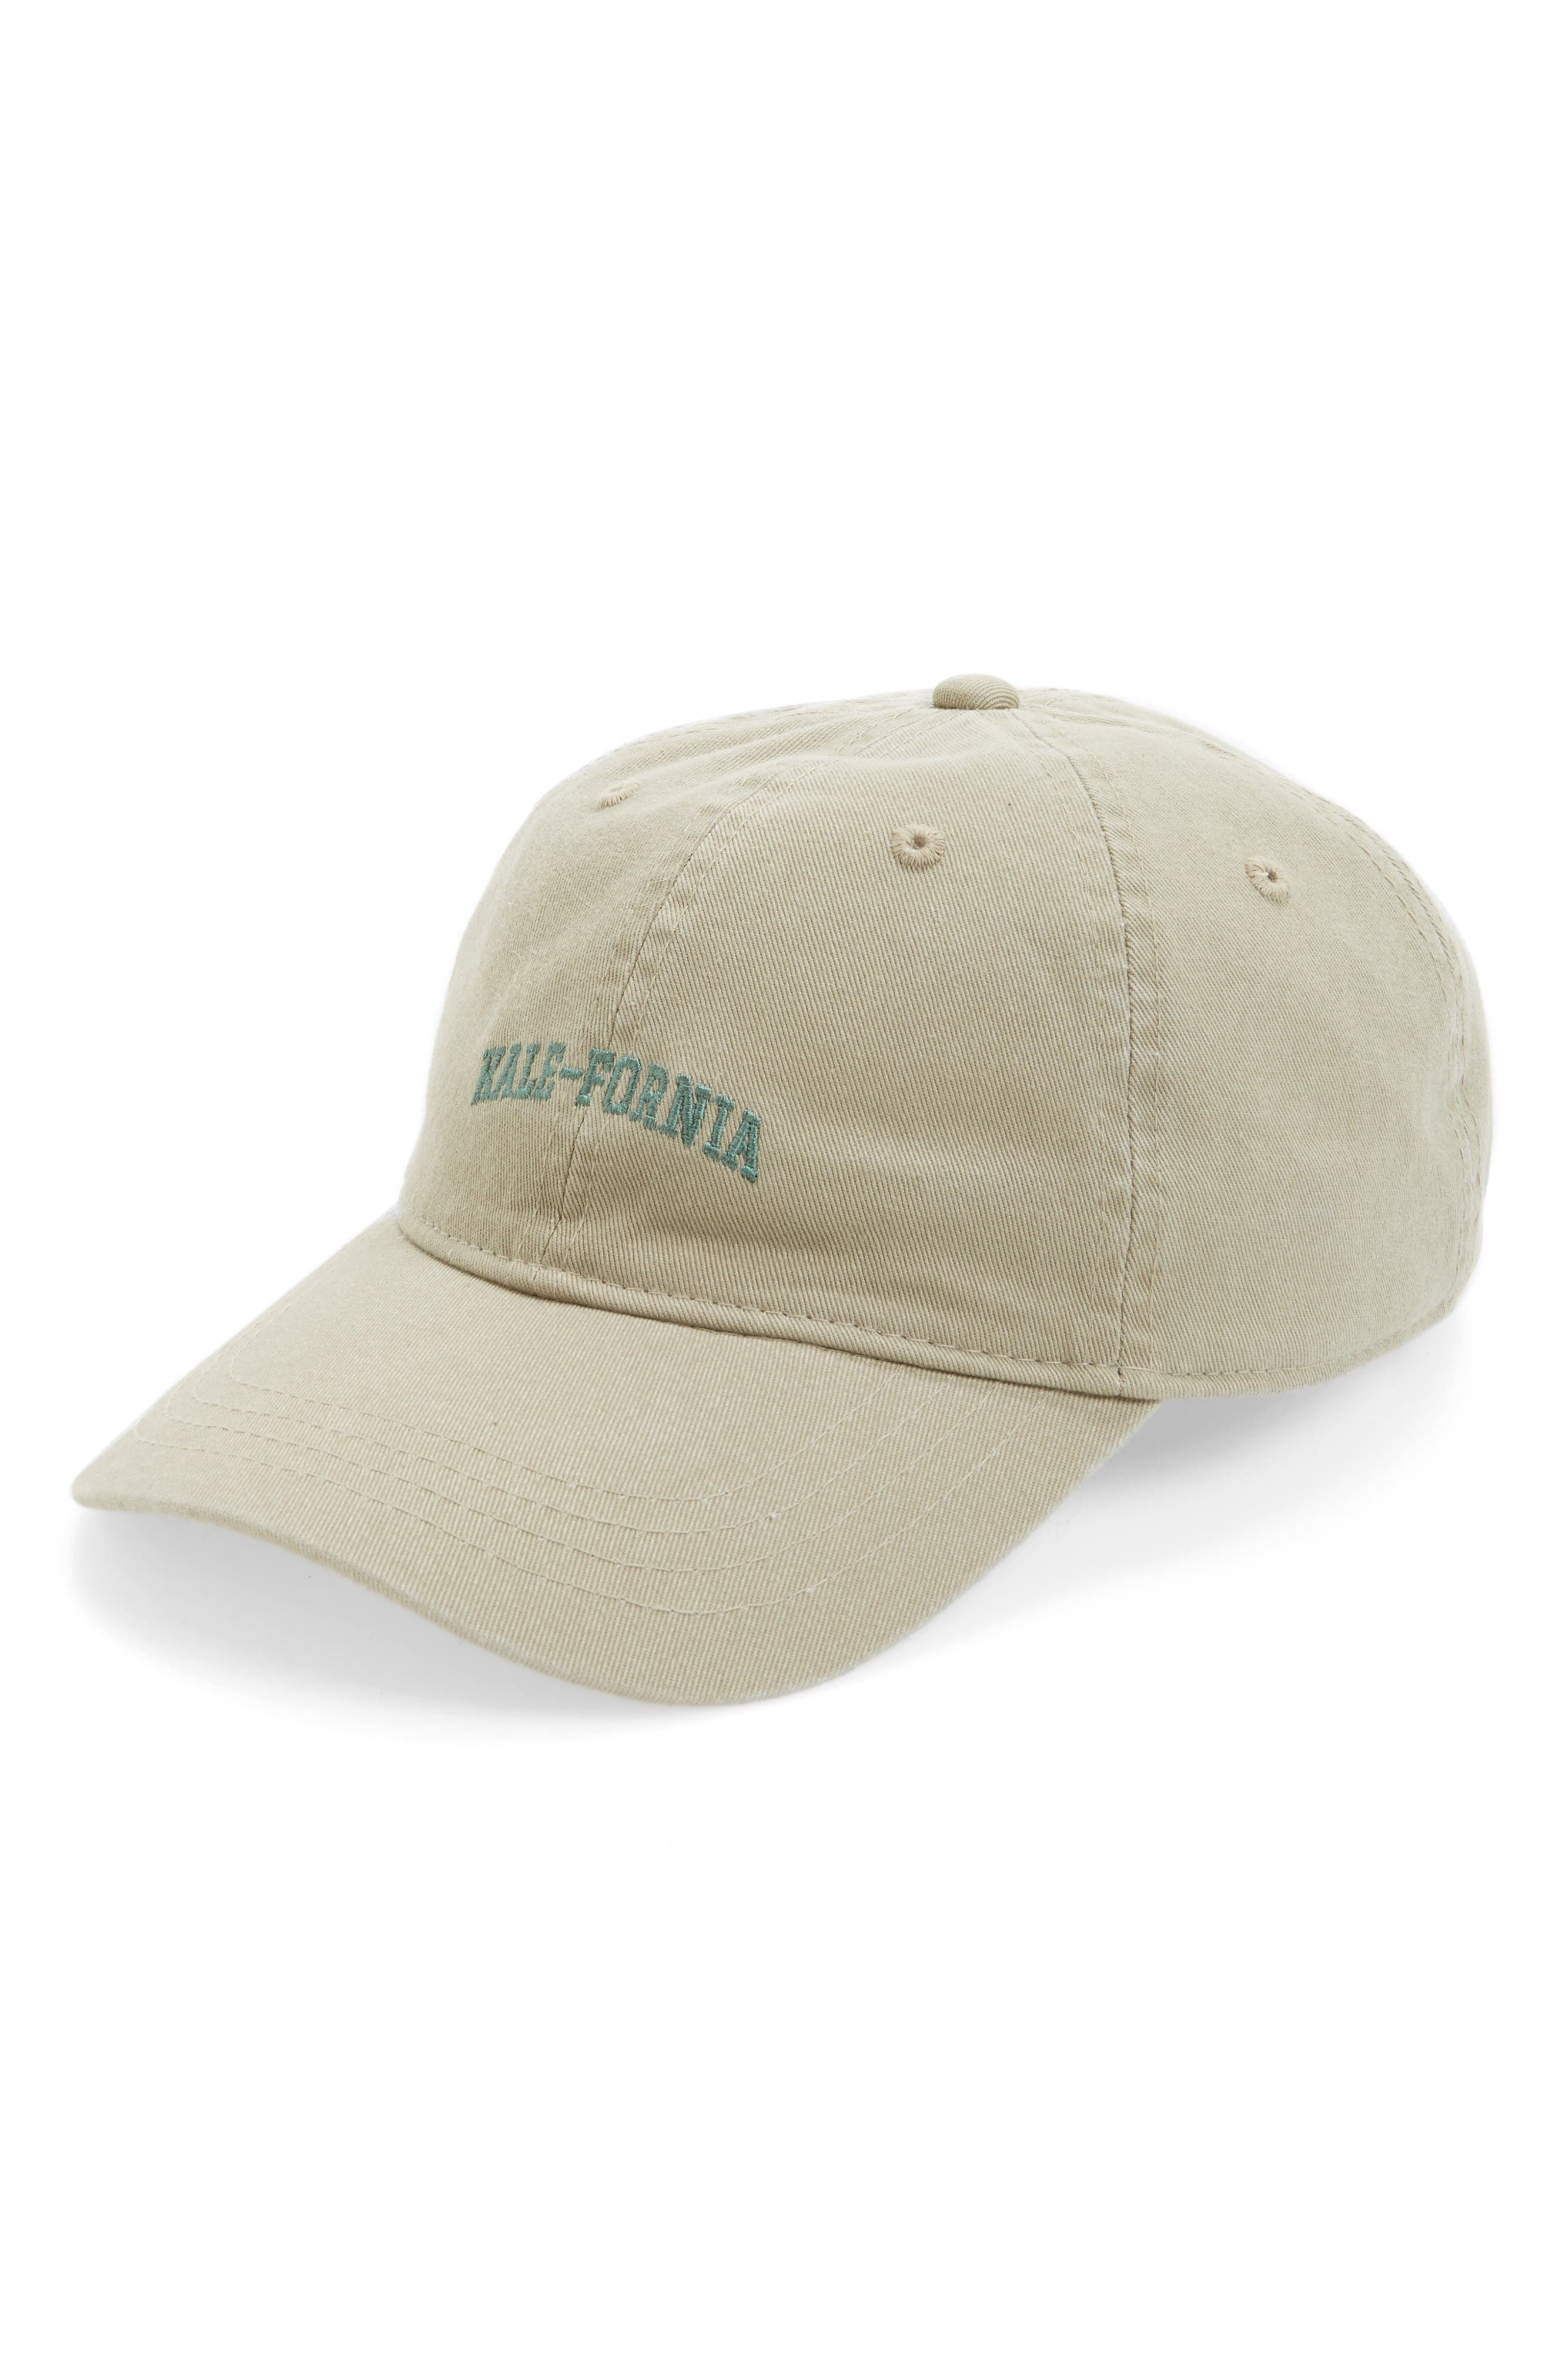 Alternate Image 1 Selected - Body Rags Clothing Co. Twill Dad Kale-Fornia Cap